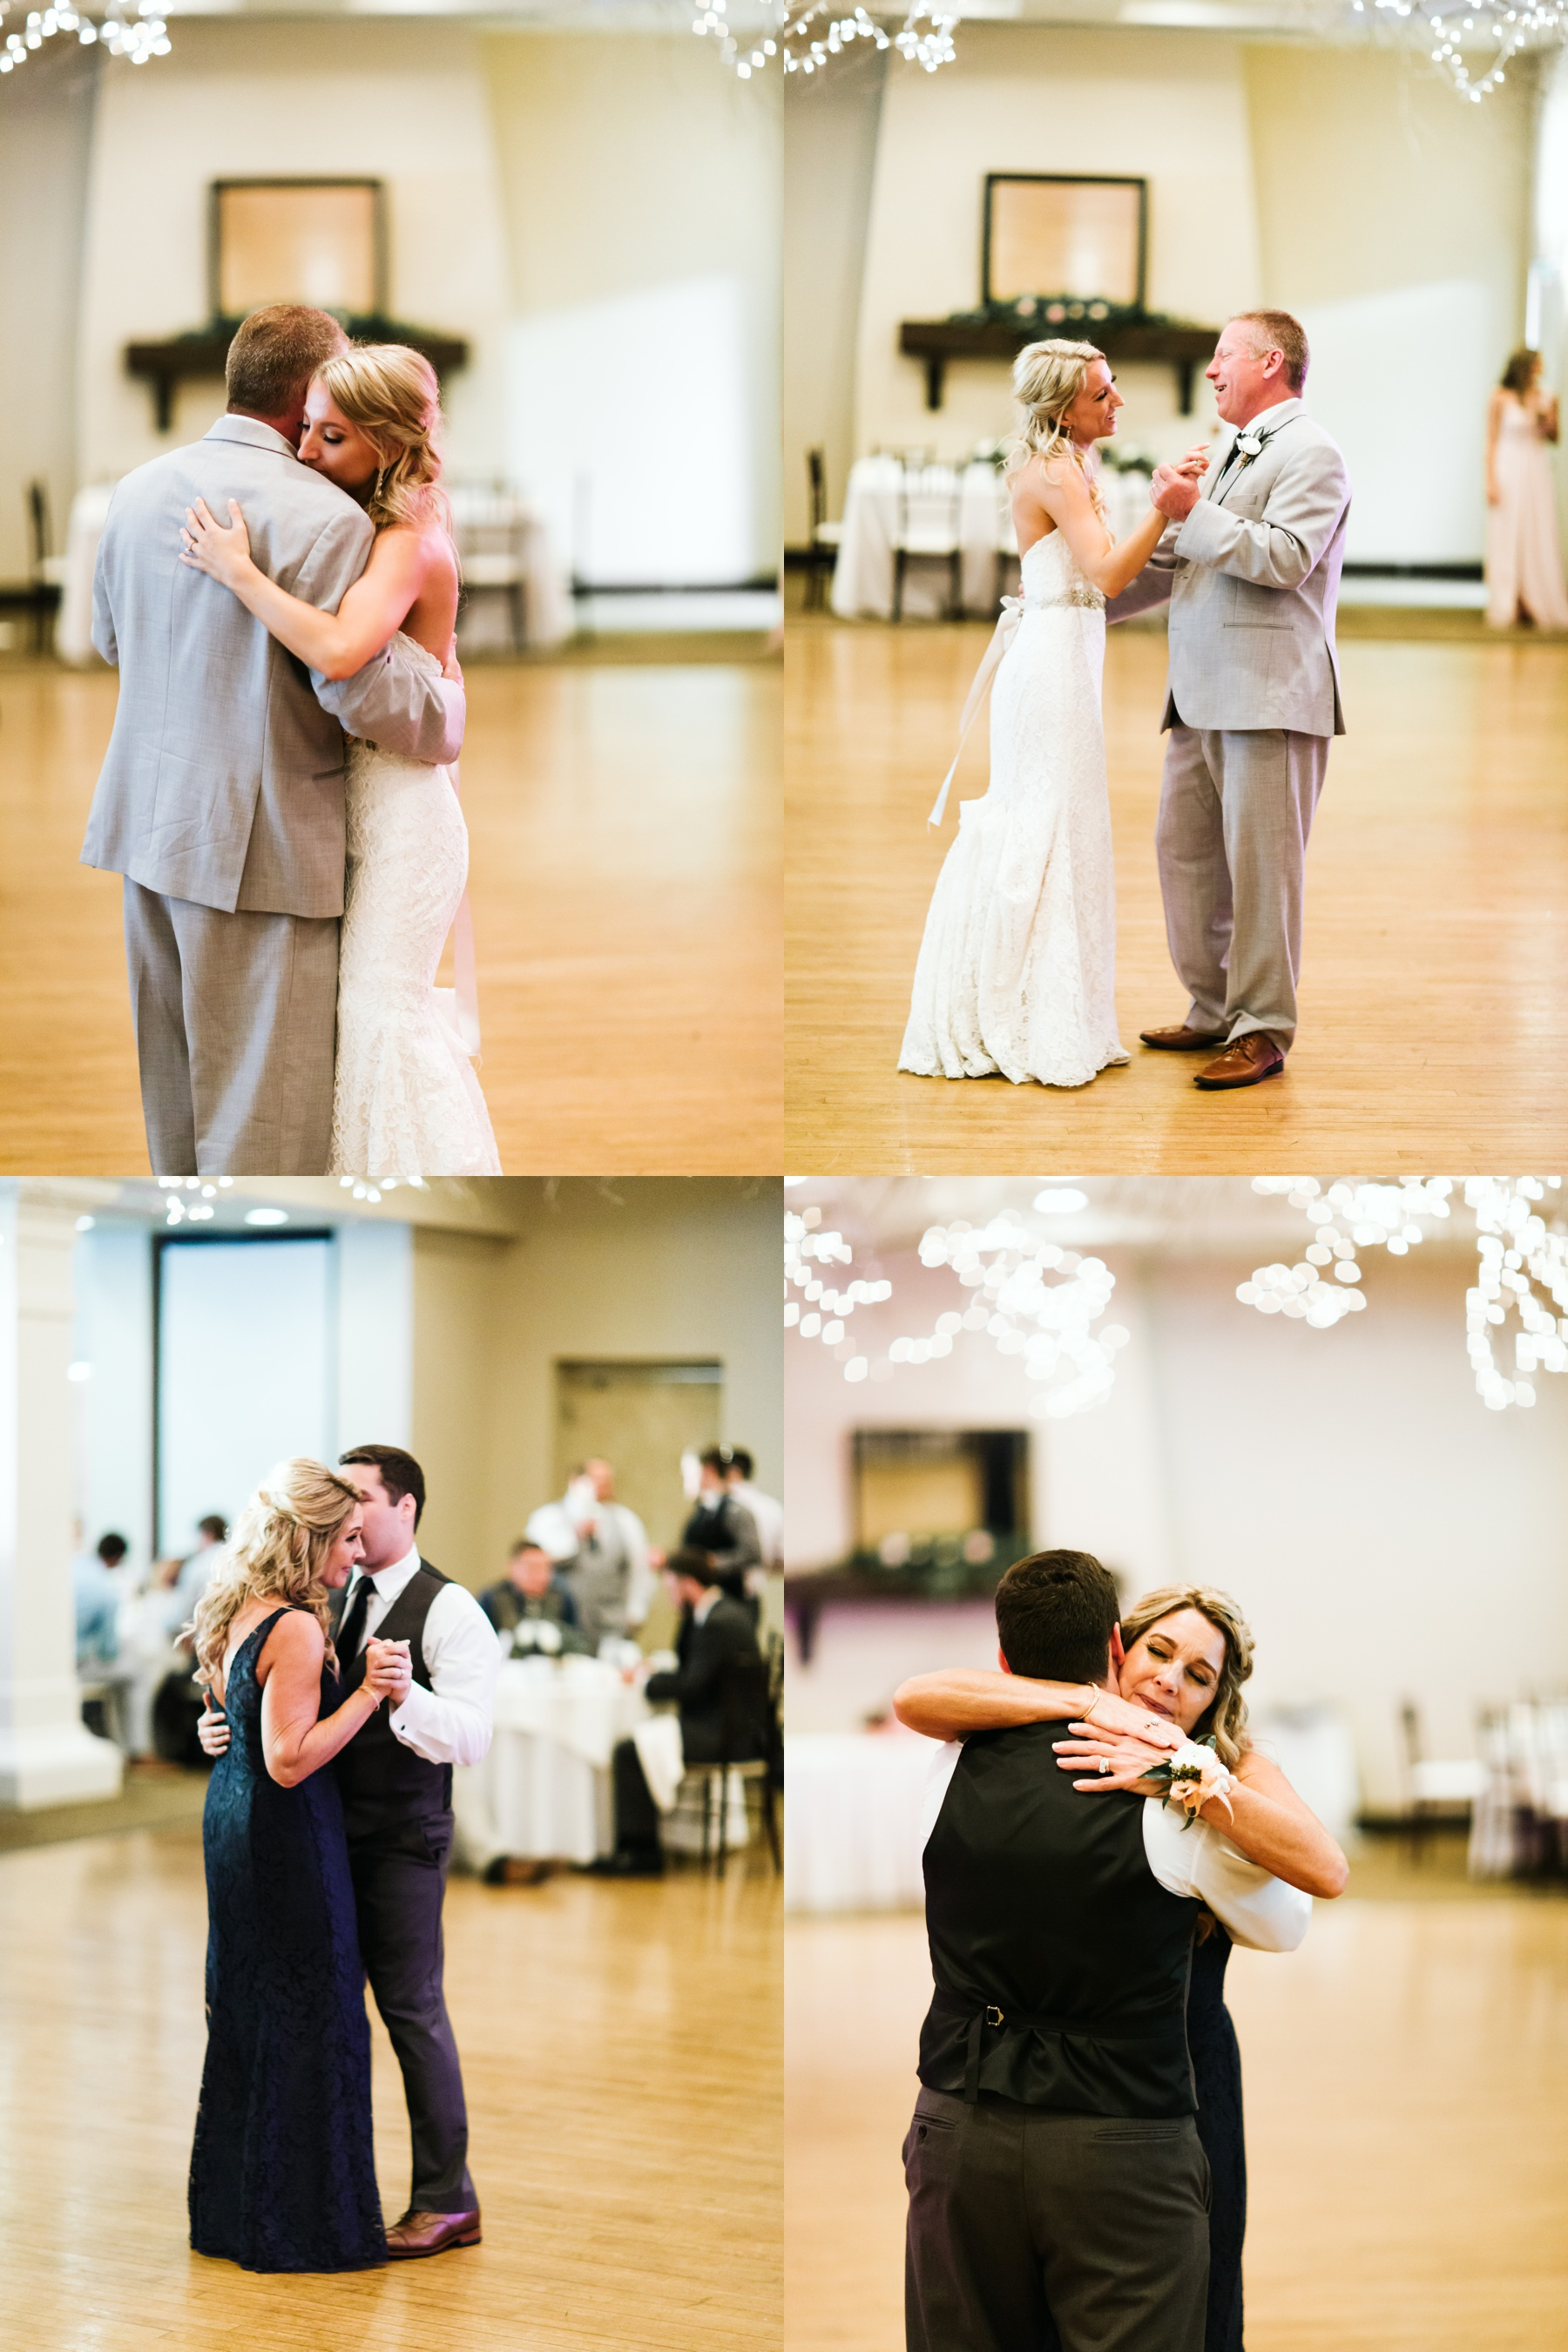 A bride and groom sharing their dances with their parents